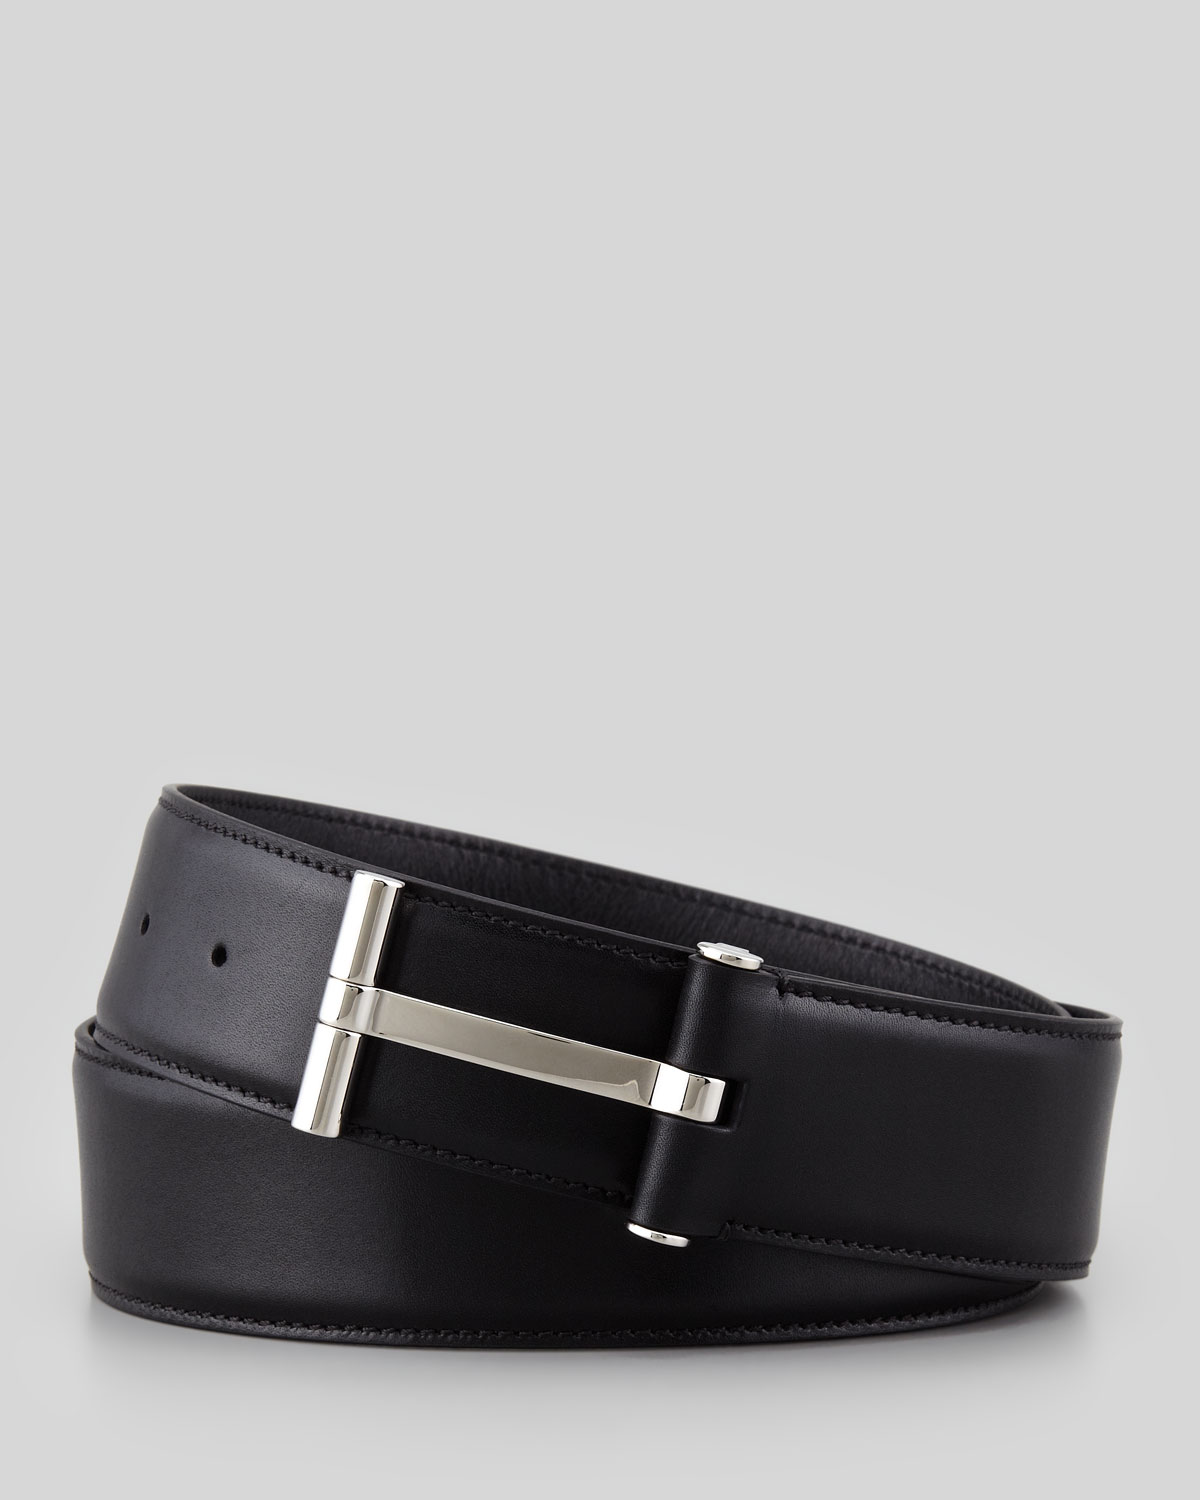 Mens Leather T Buckle Belt, Black   Tom Ford